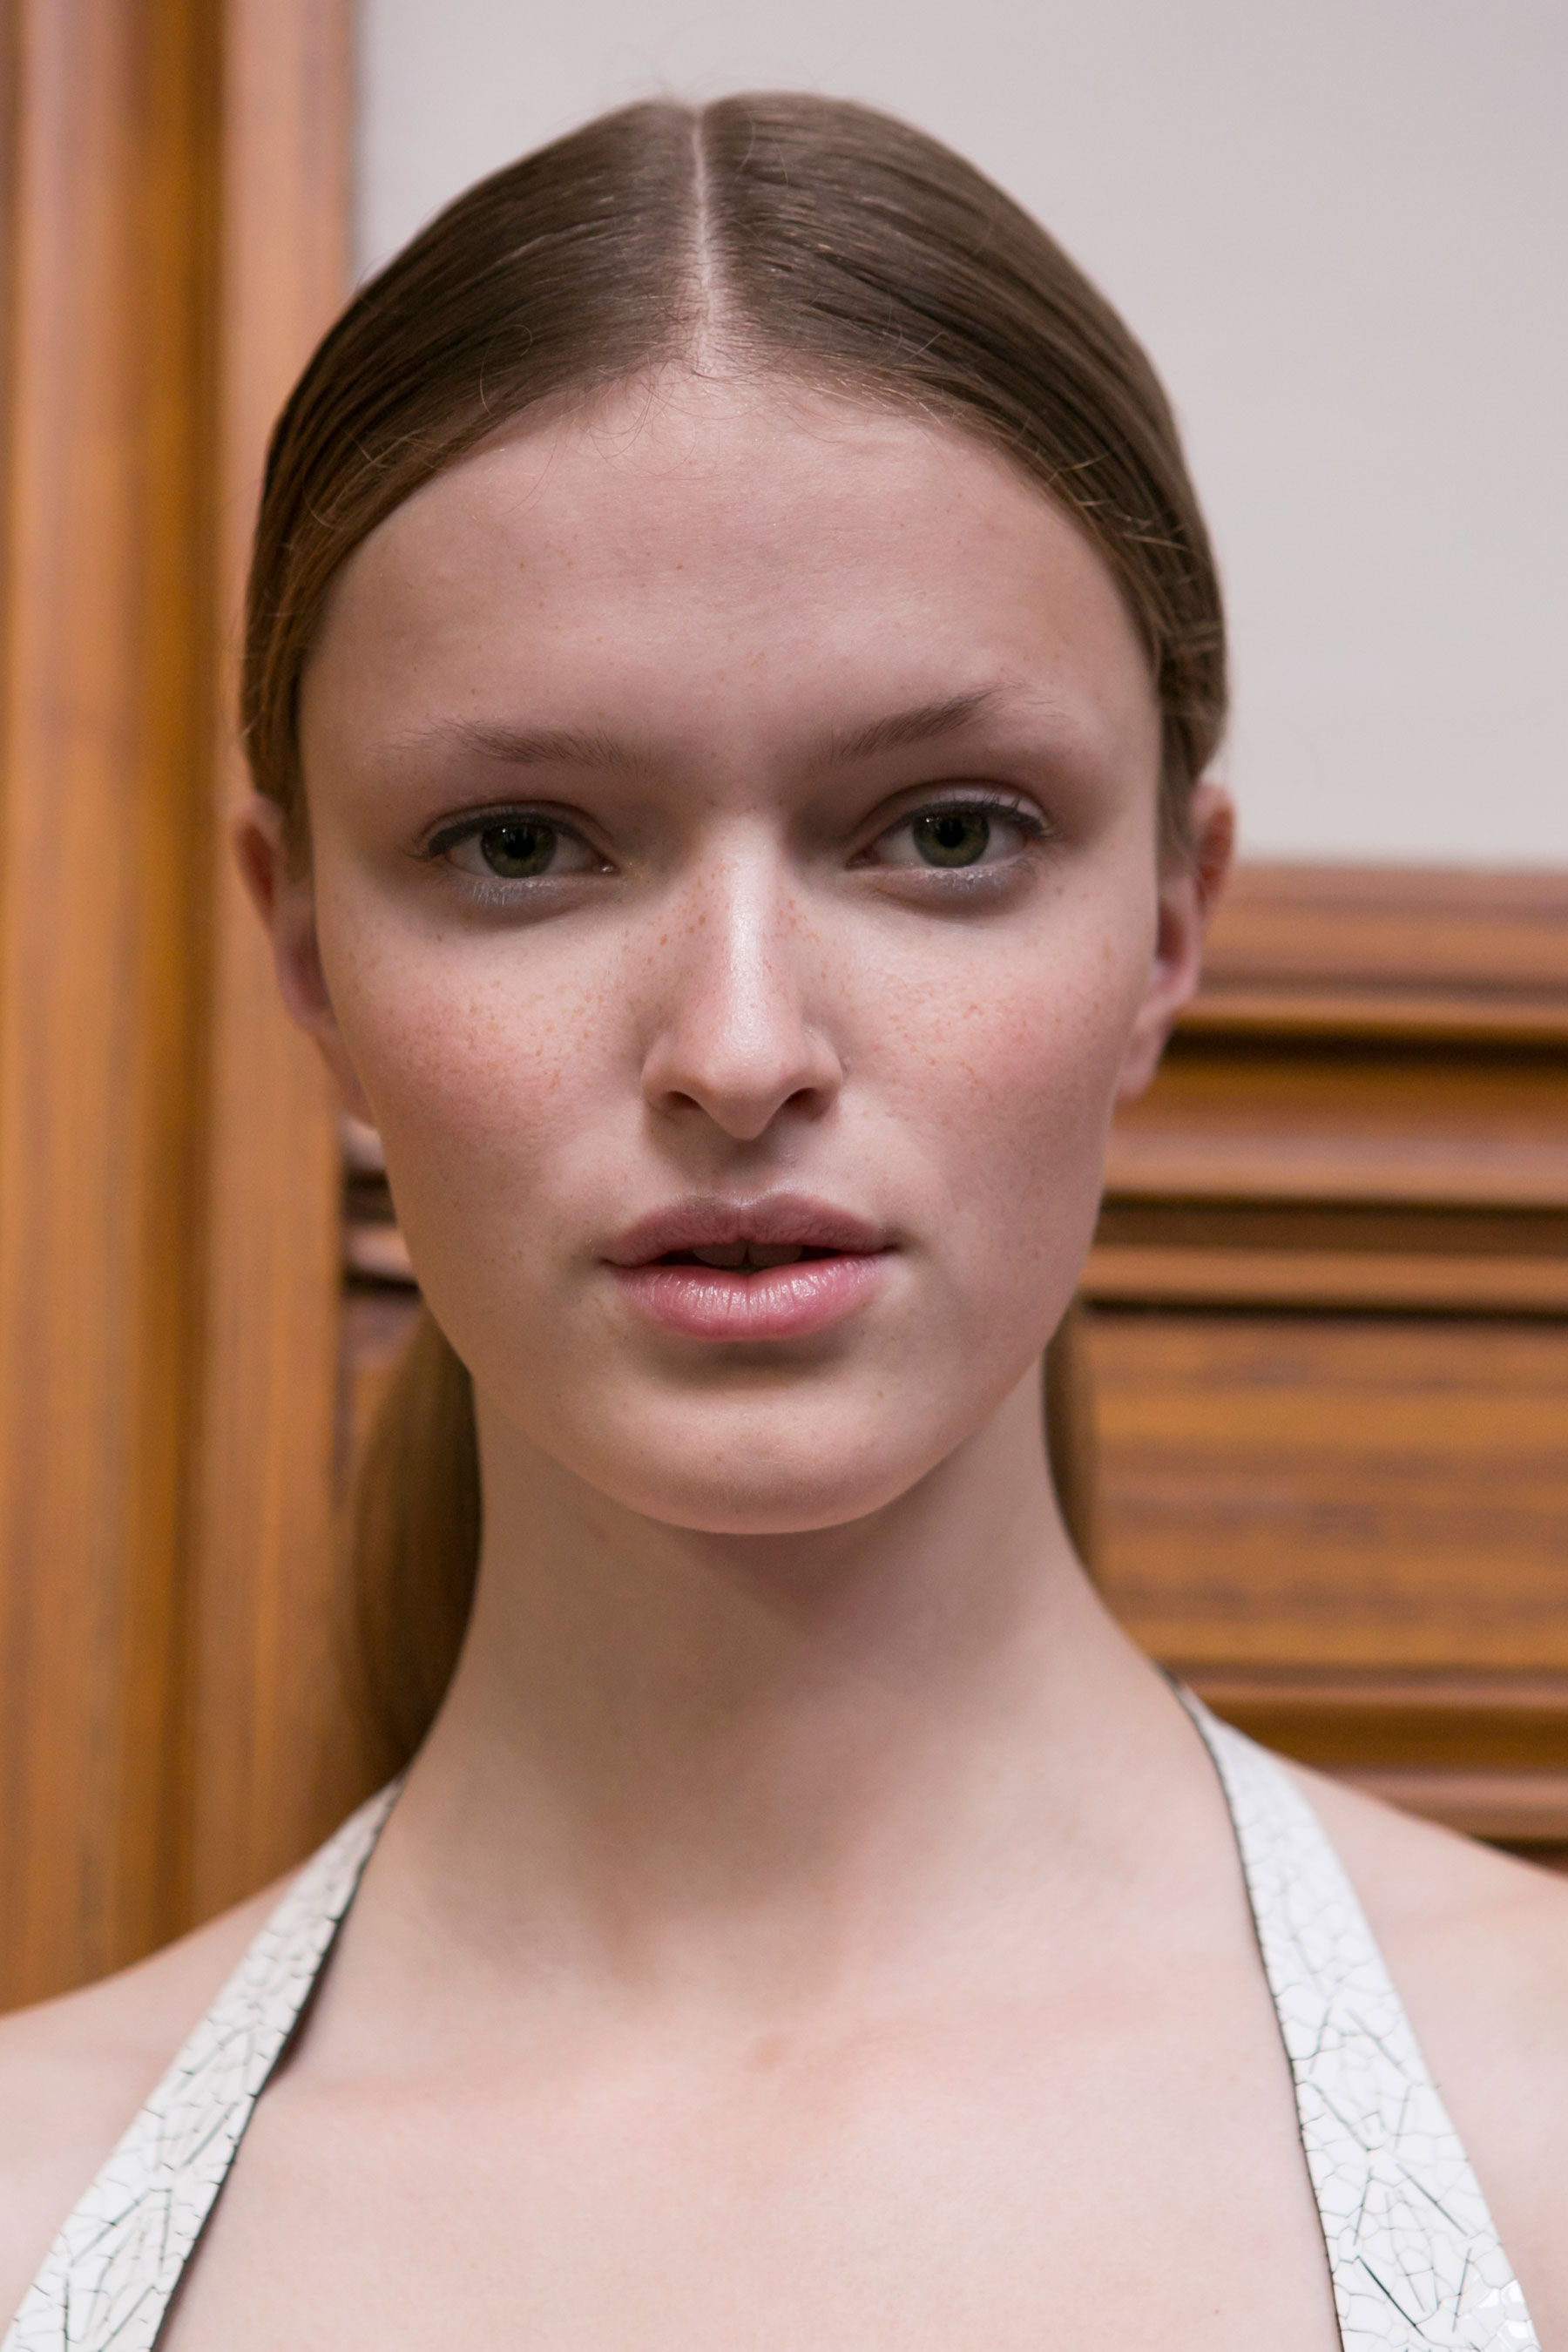 Iris-van-Herpen-spring-2016-beauty-fashion-show-the-impression-27